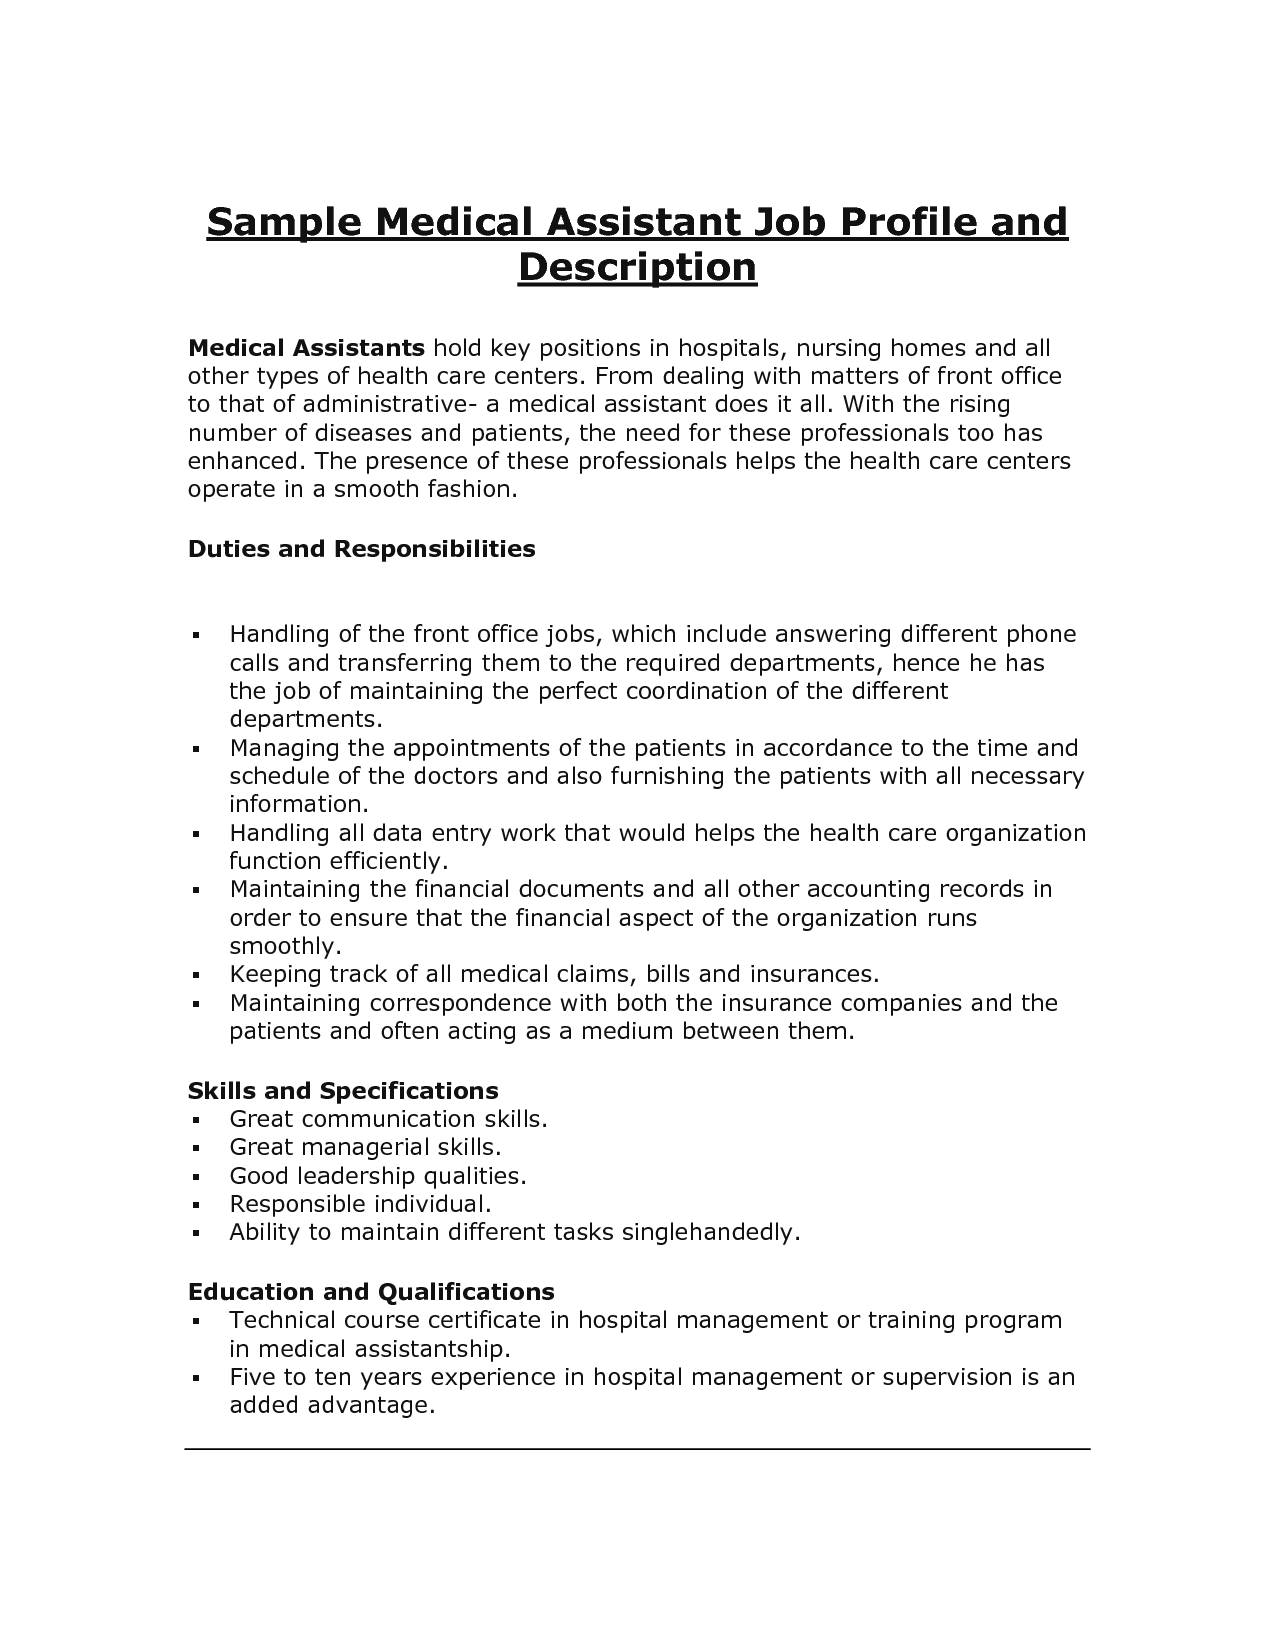 sample Medical Assistant Job Description duties and